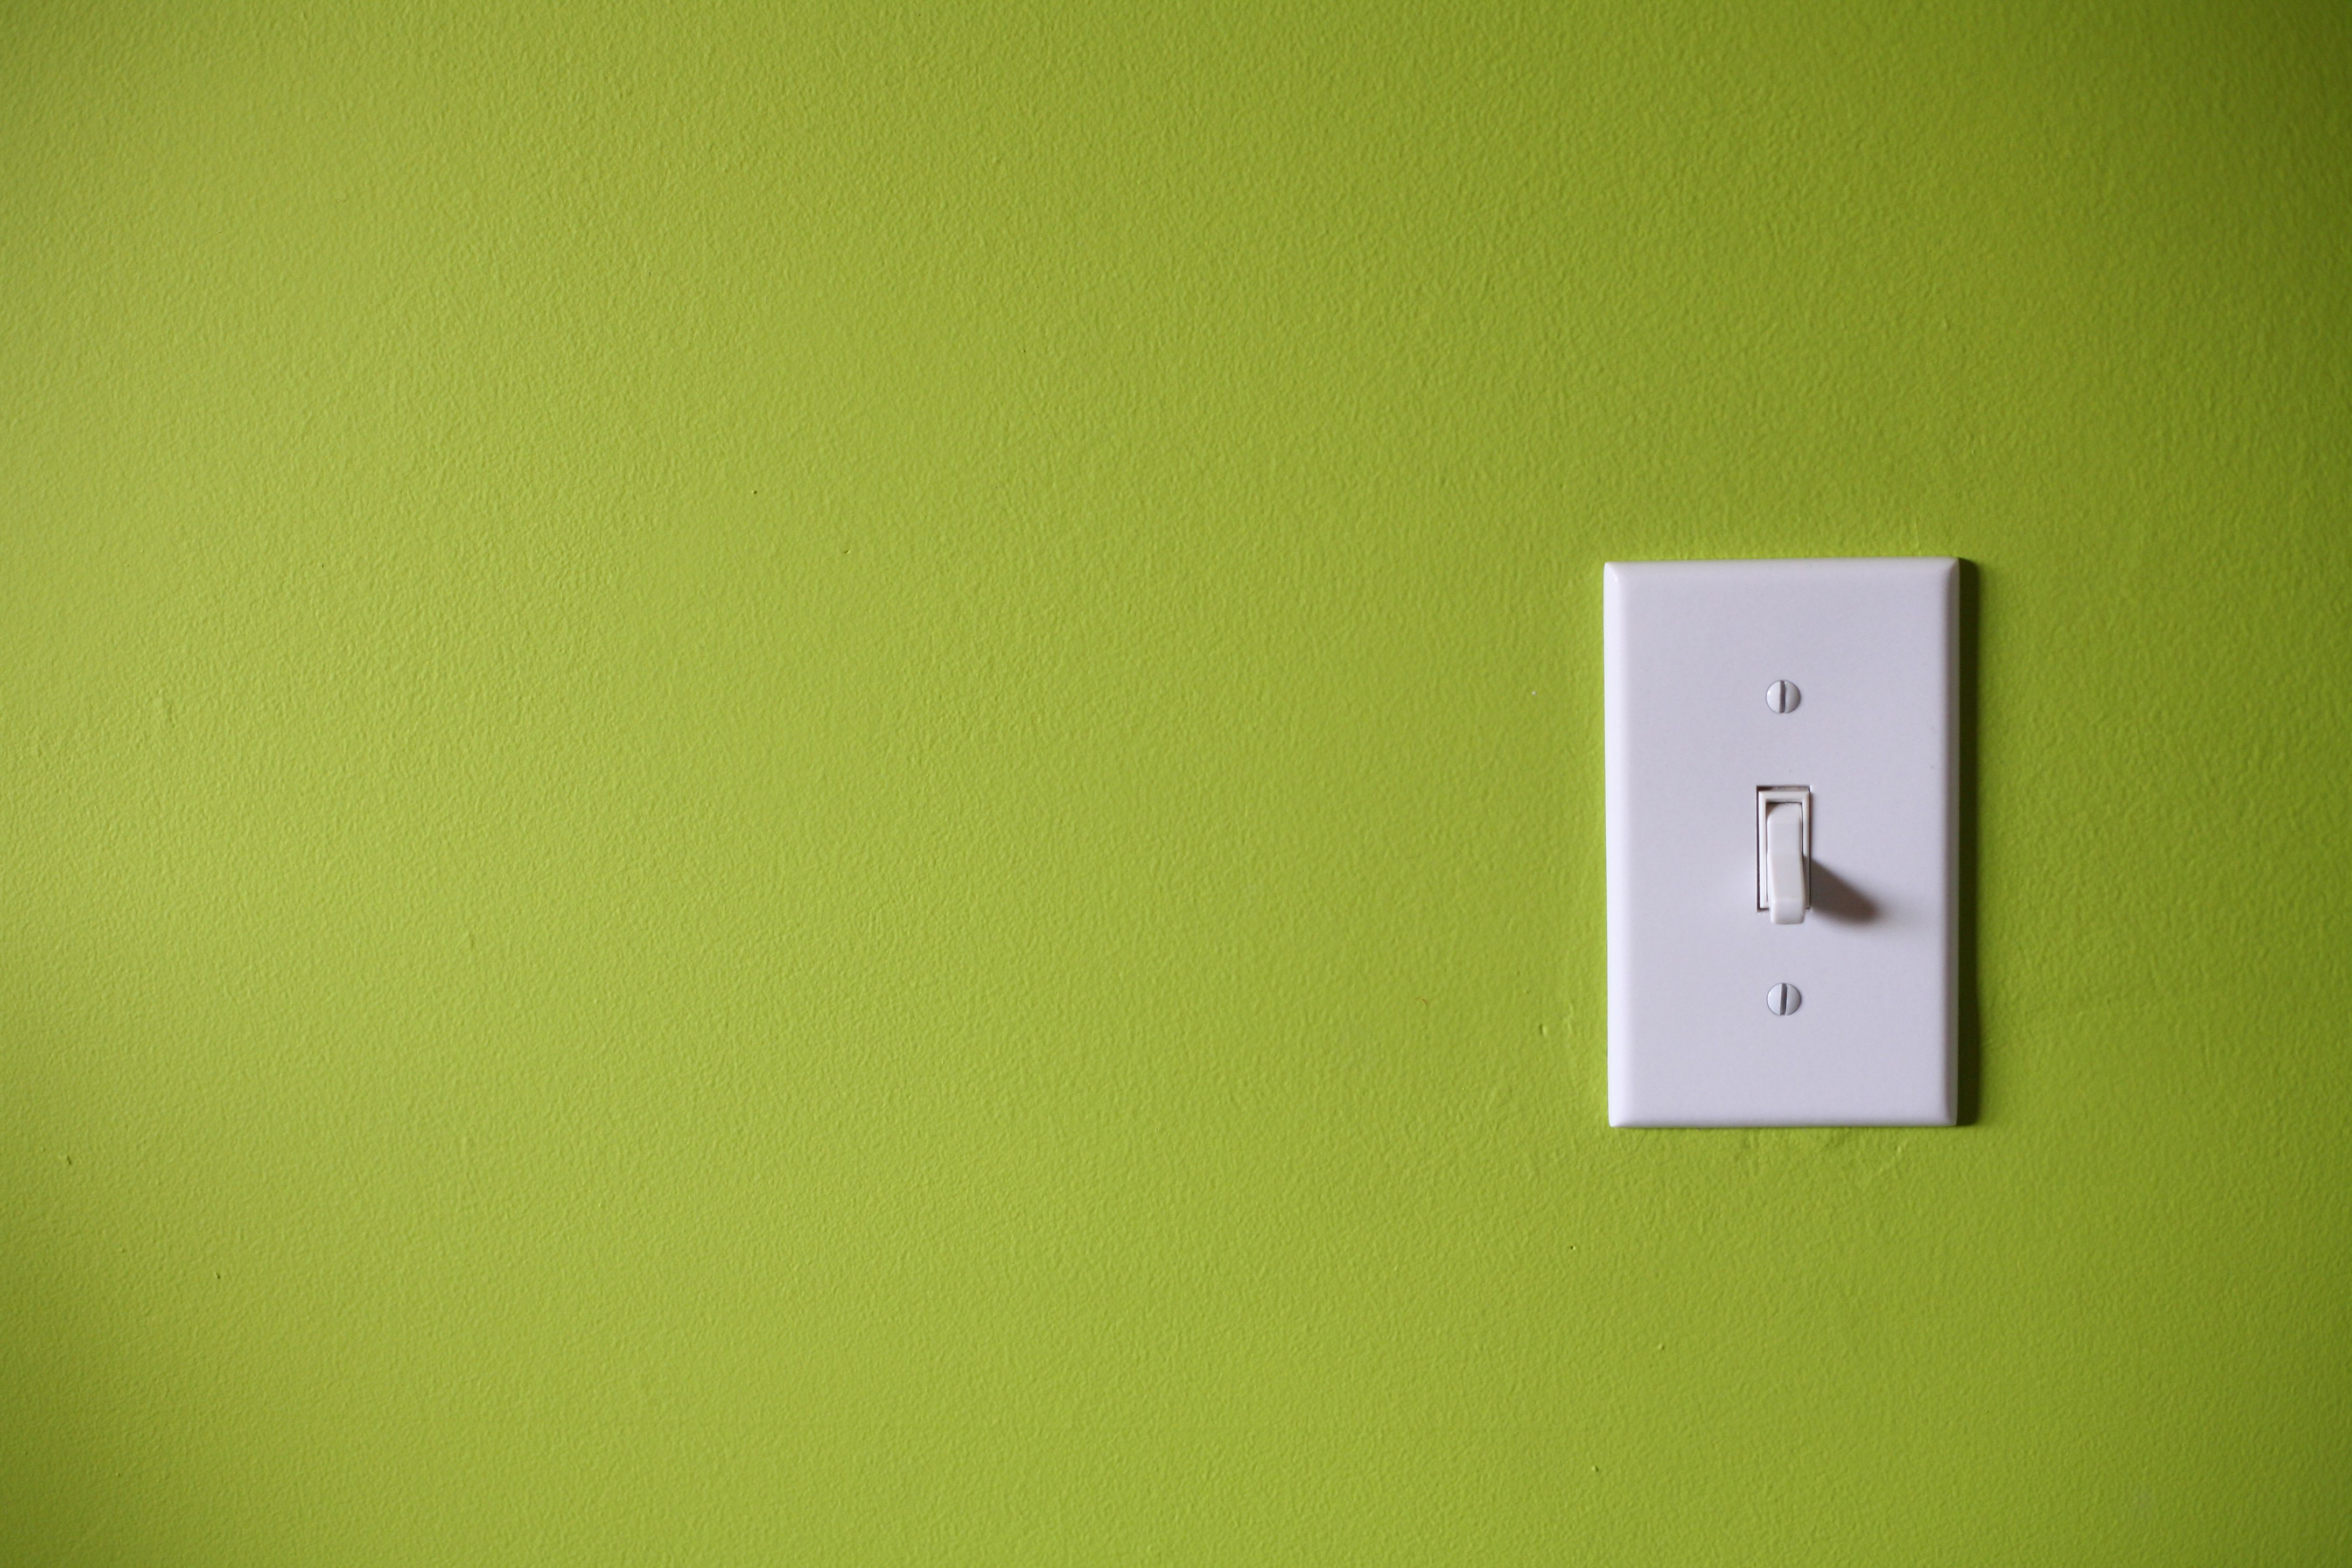 Symptoms Of A Defective Wall Switch